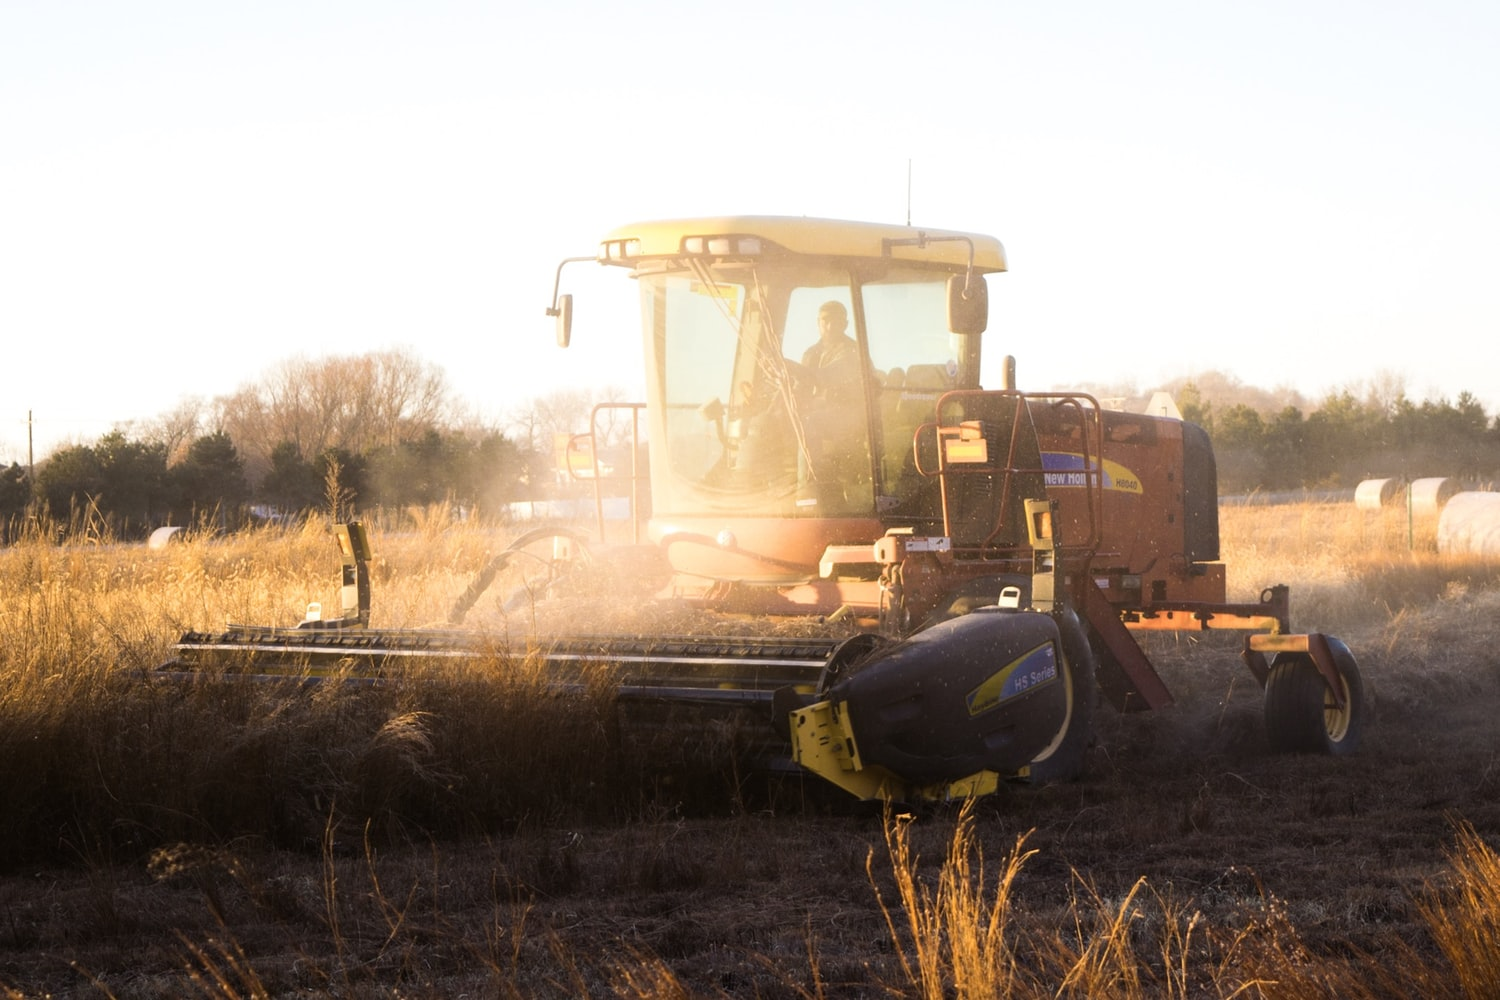 Large harvester tractor going through field of wheat at sunset.